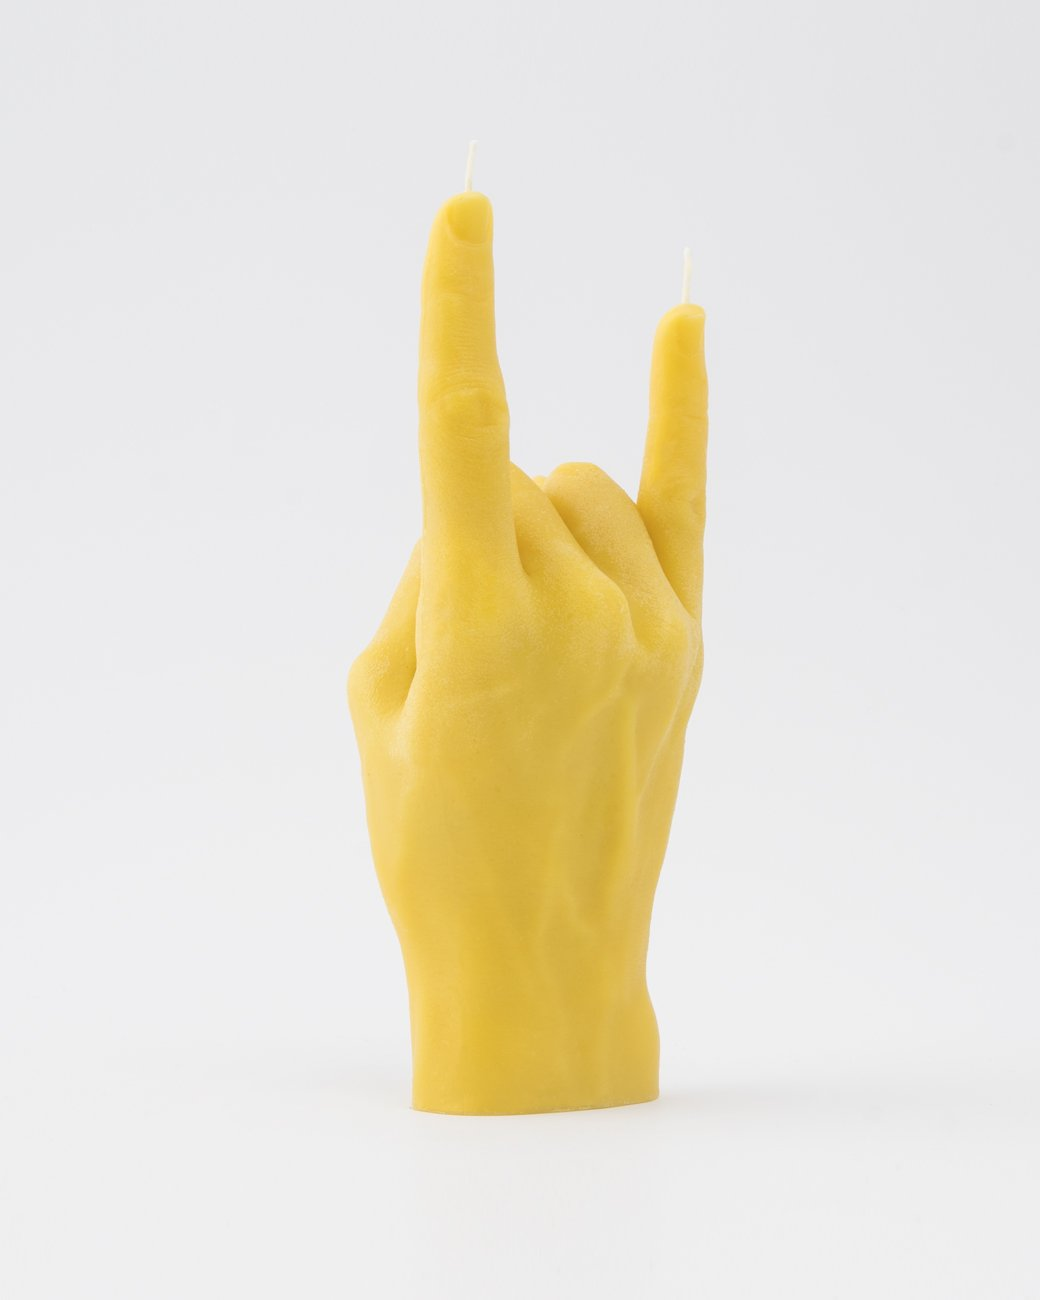 You Rock. Hand gesture candle YELLOW